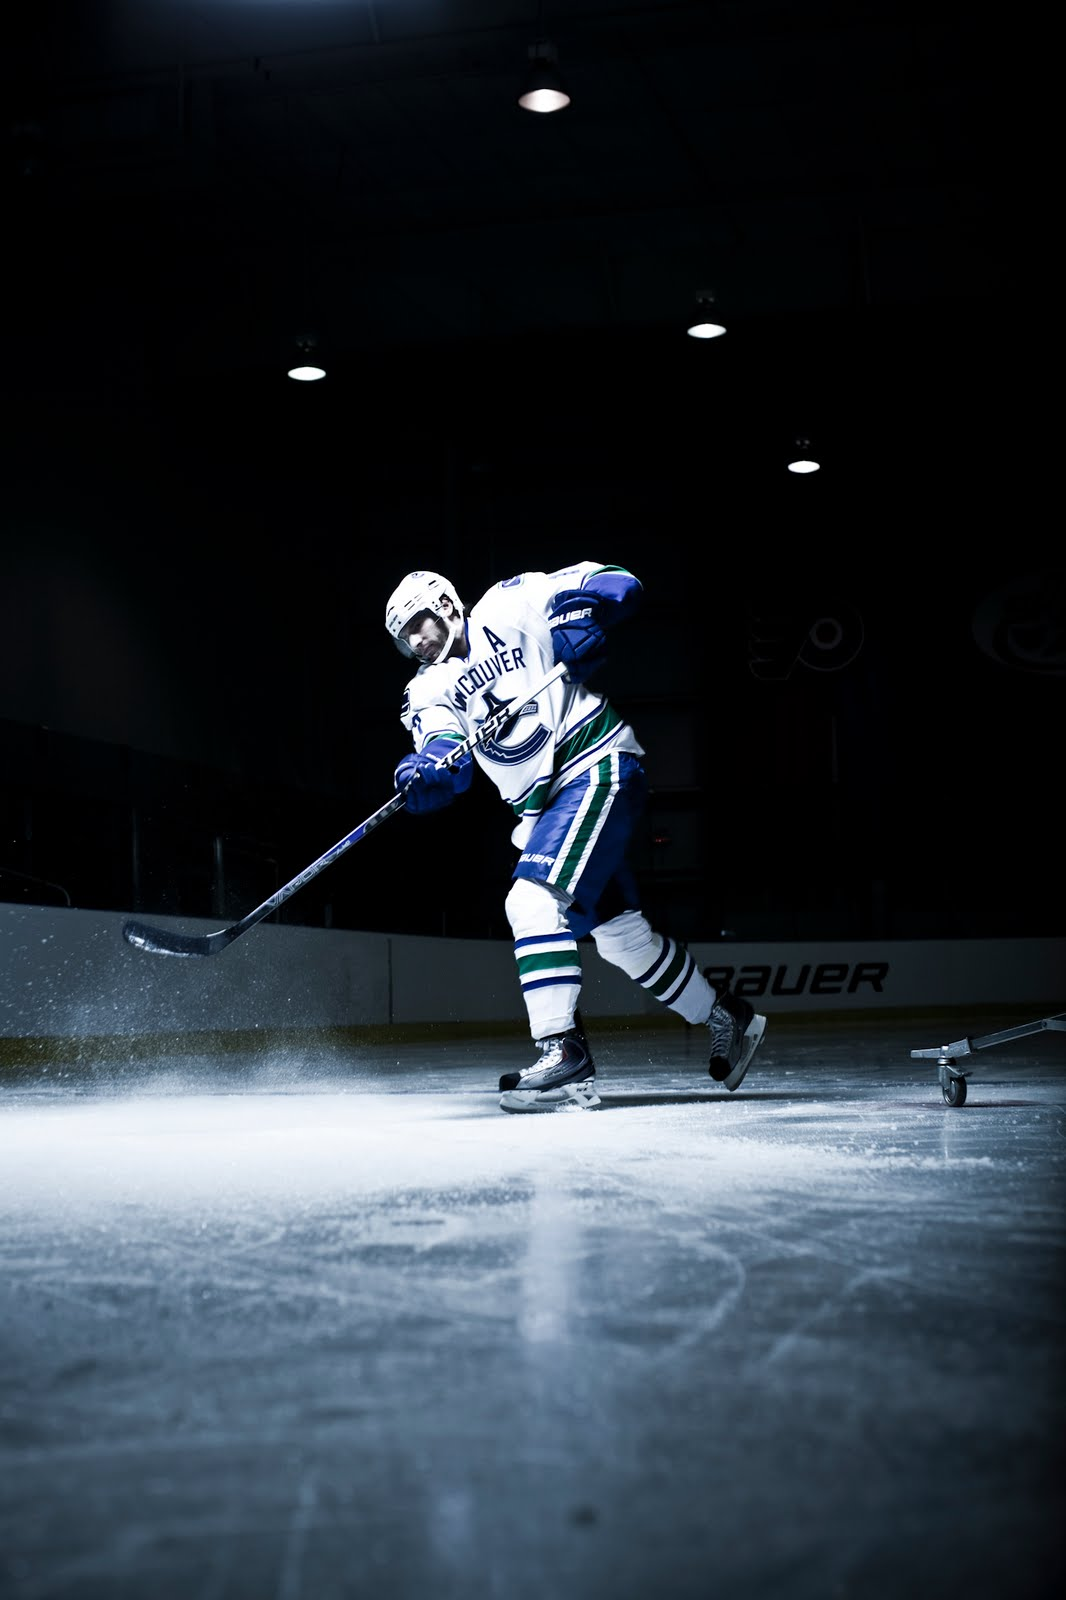 Hockey Rink Iphone Wallpaper Patrick Molnar Bauer Hockey Atlantic City 7 10